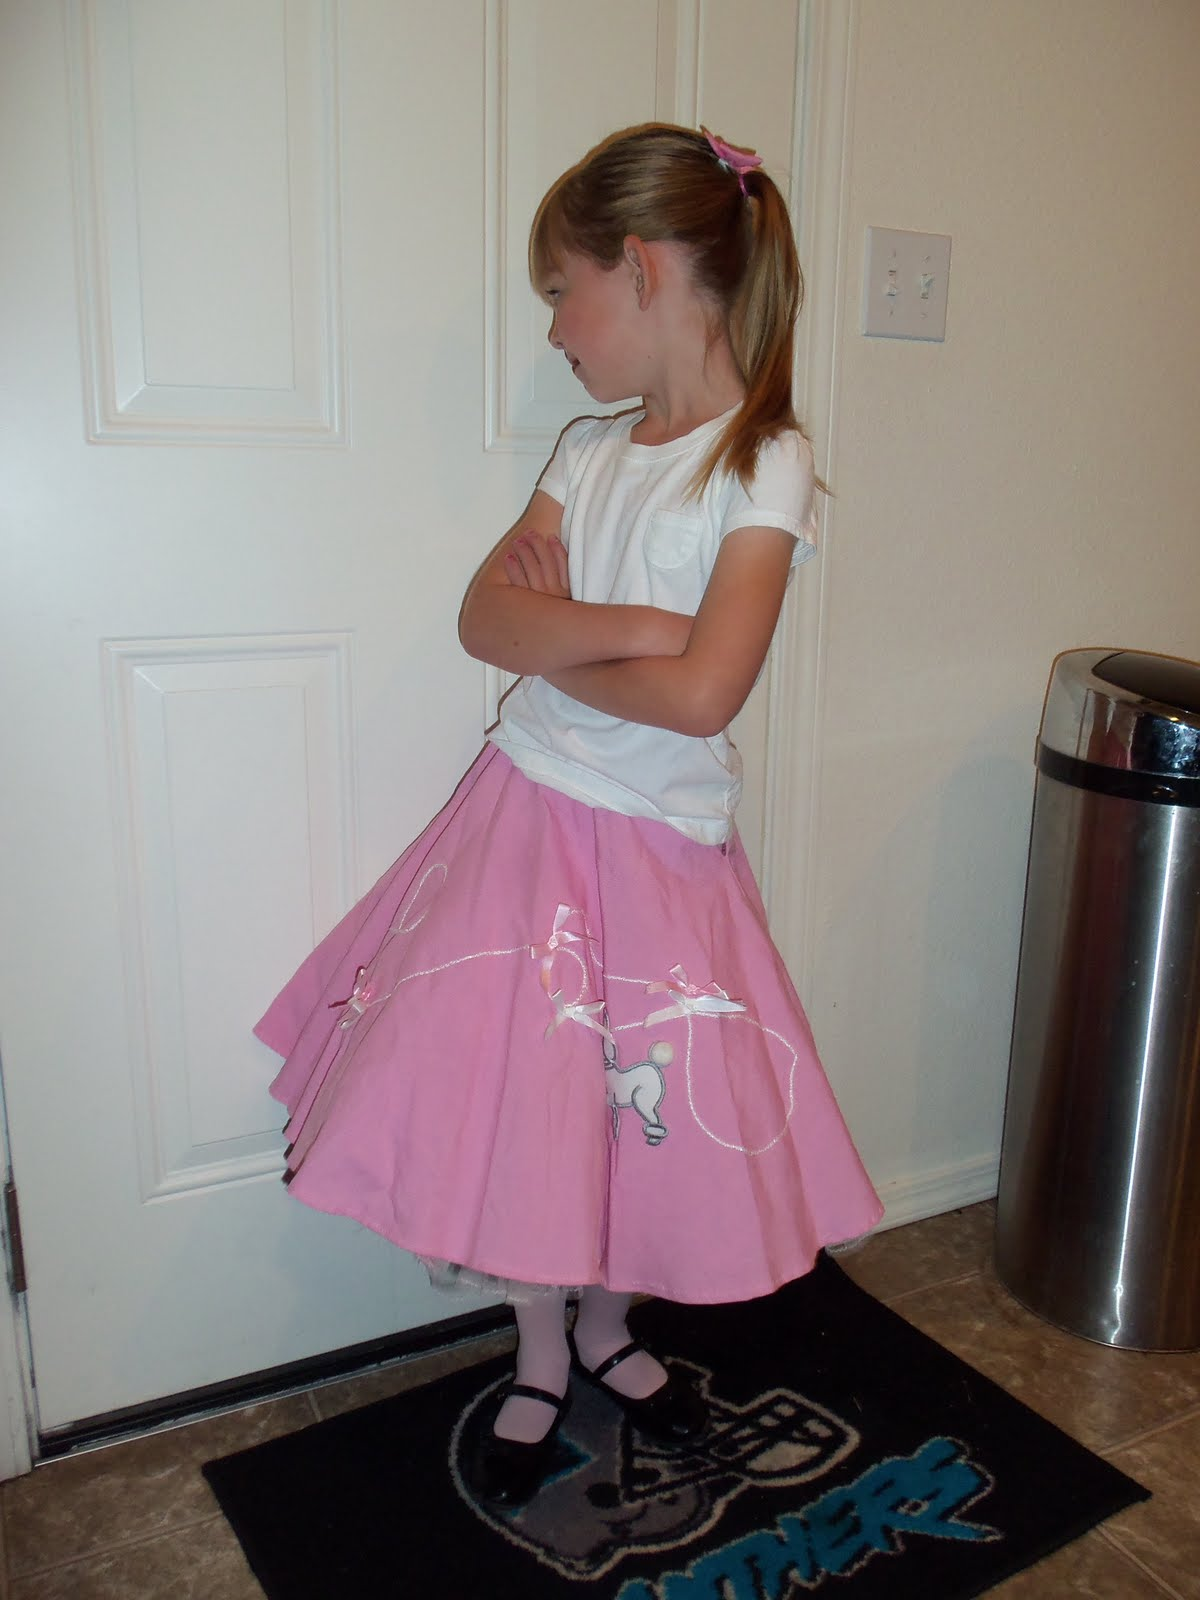 50s Hairstyles Poodle Skirt Had a poodle skirt that